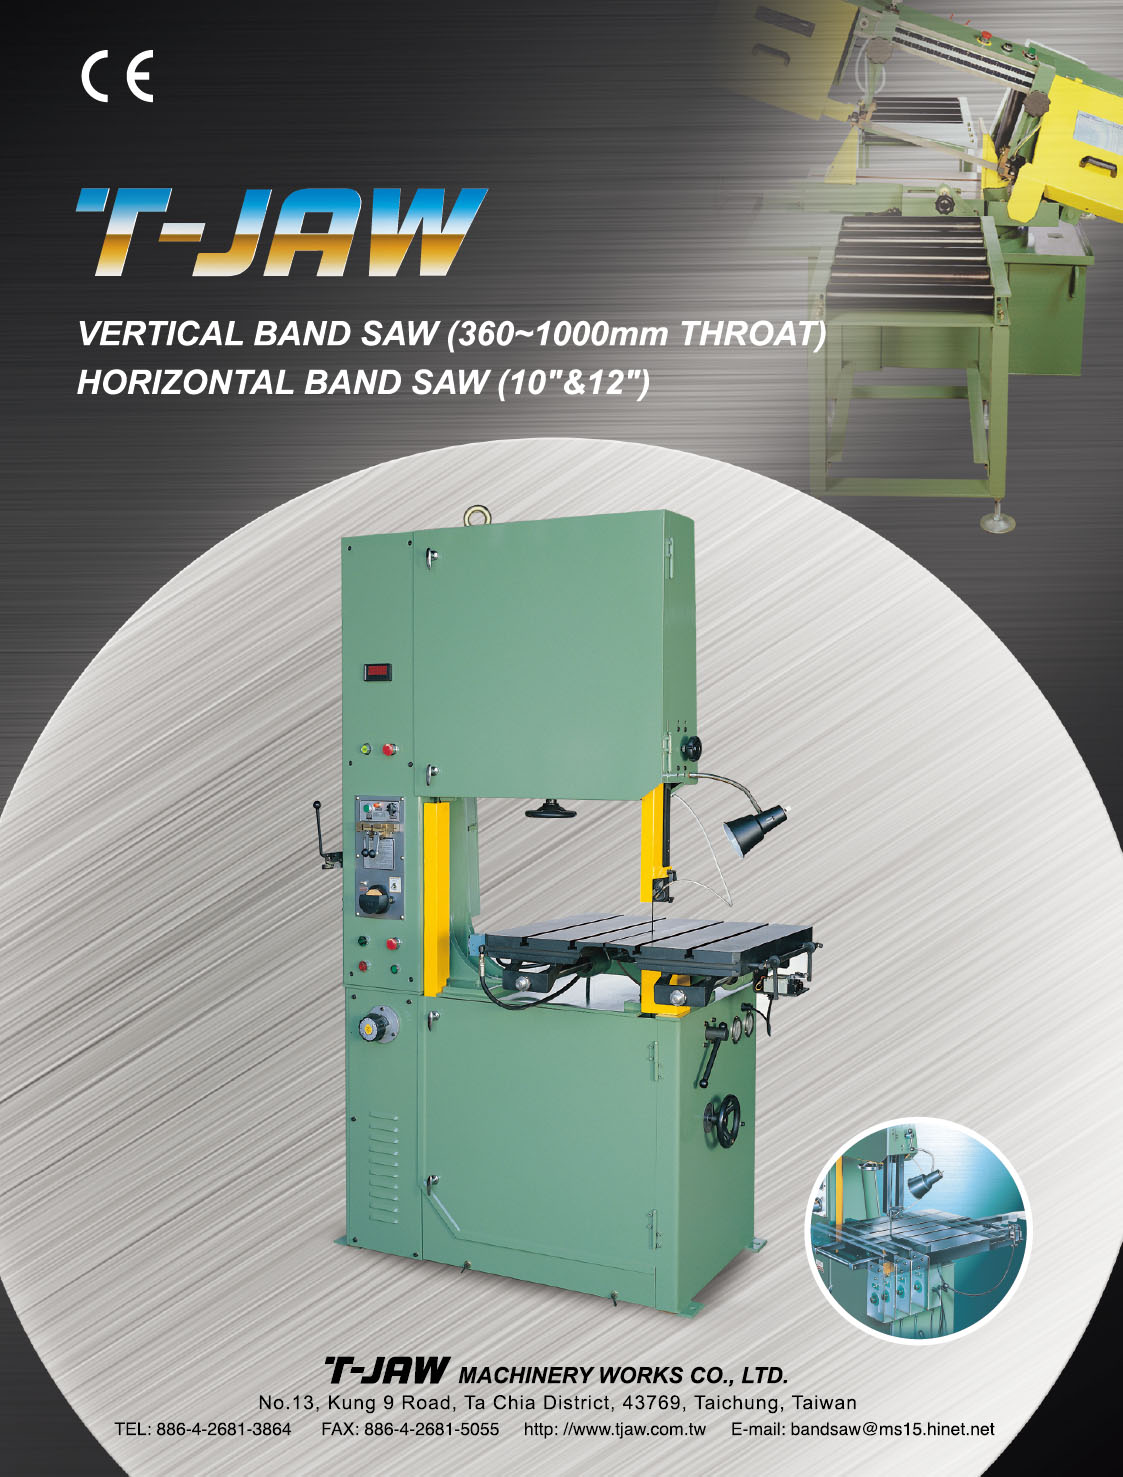 T-JAW MACHINERY WORKS CO., LTD.